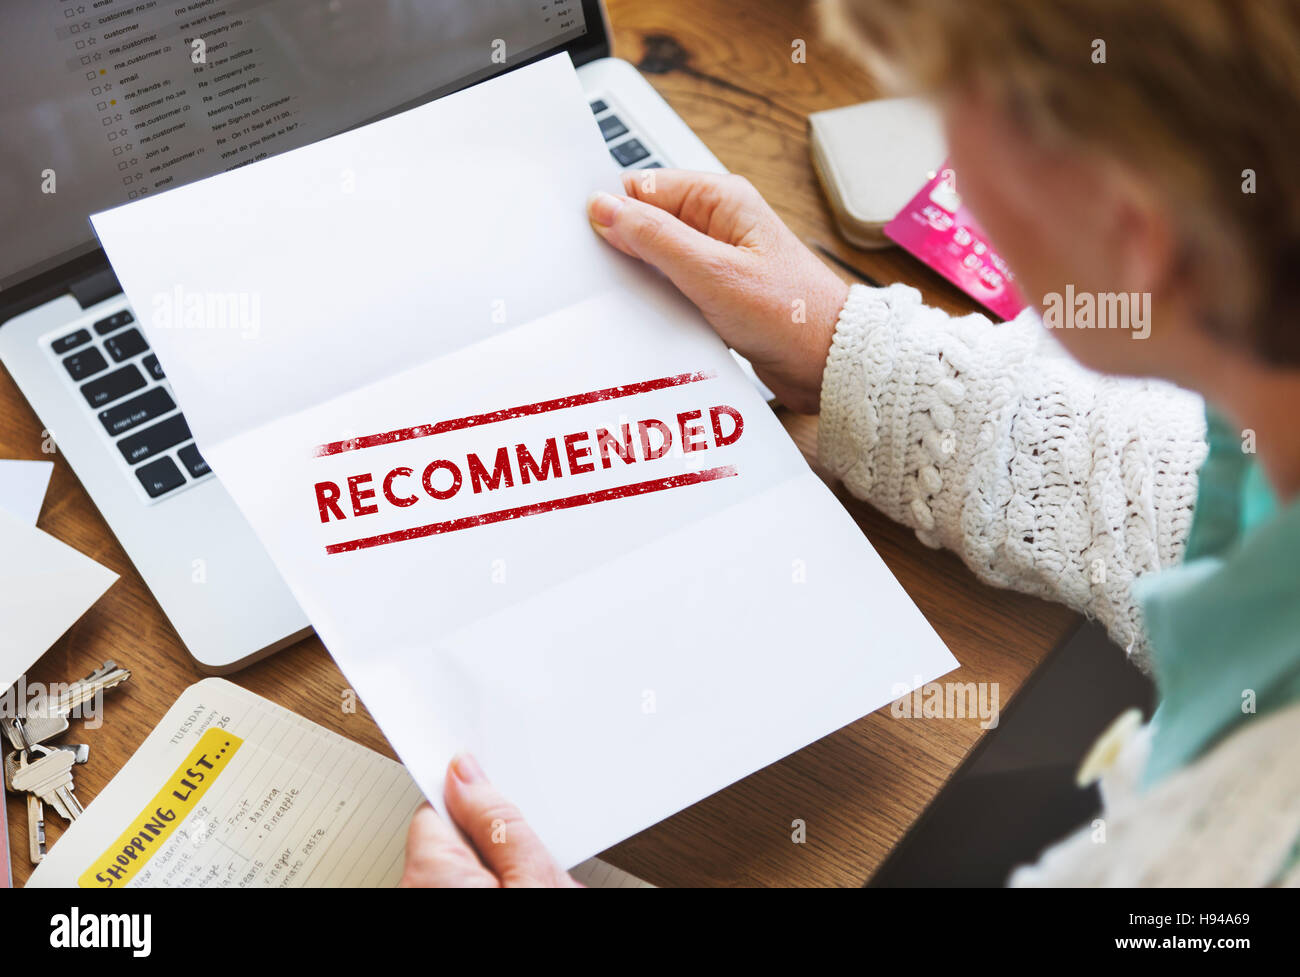 Recommended Offer Refer Satisfaction Suggestion Concept - Stock Image